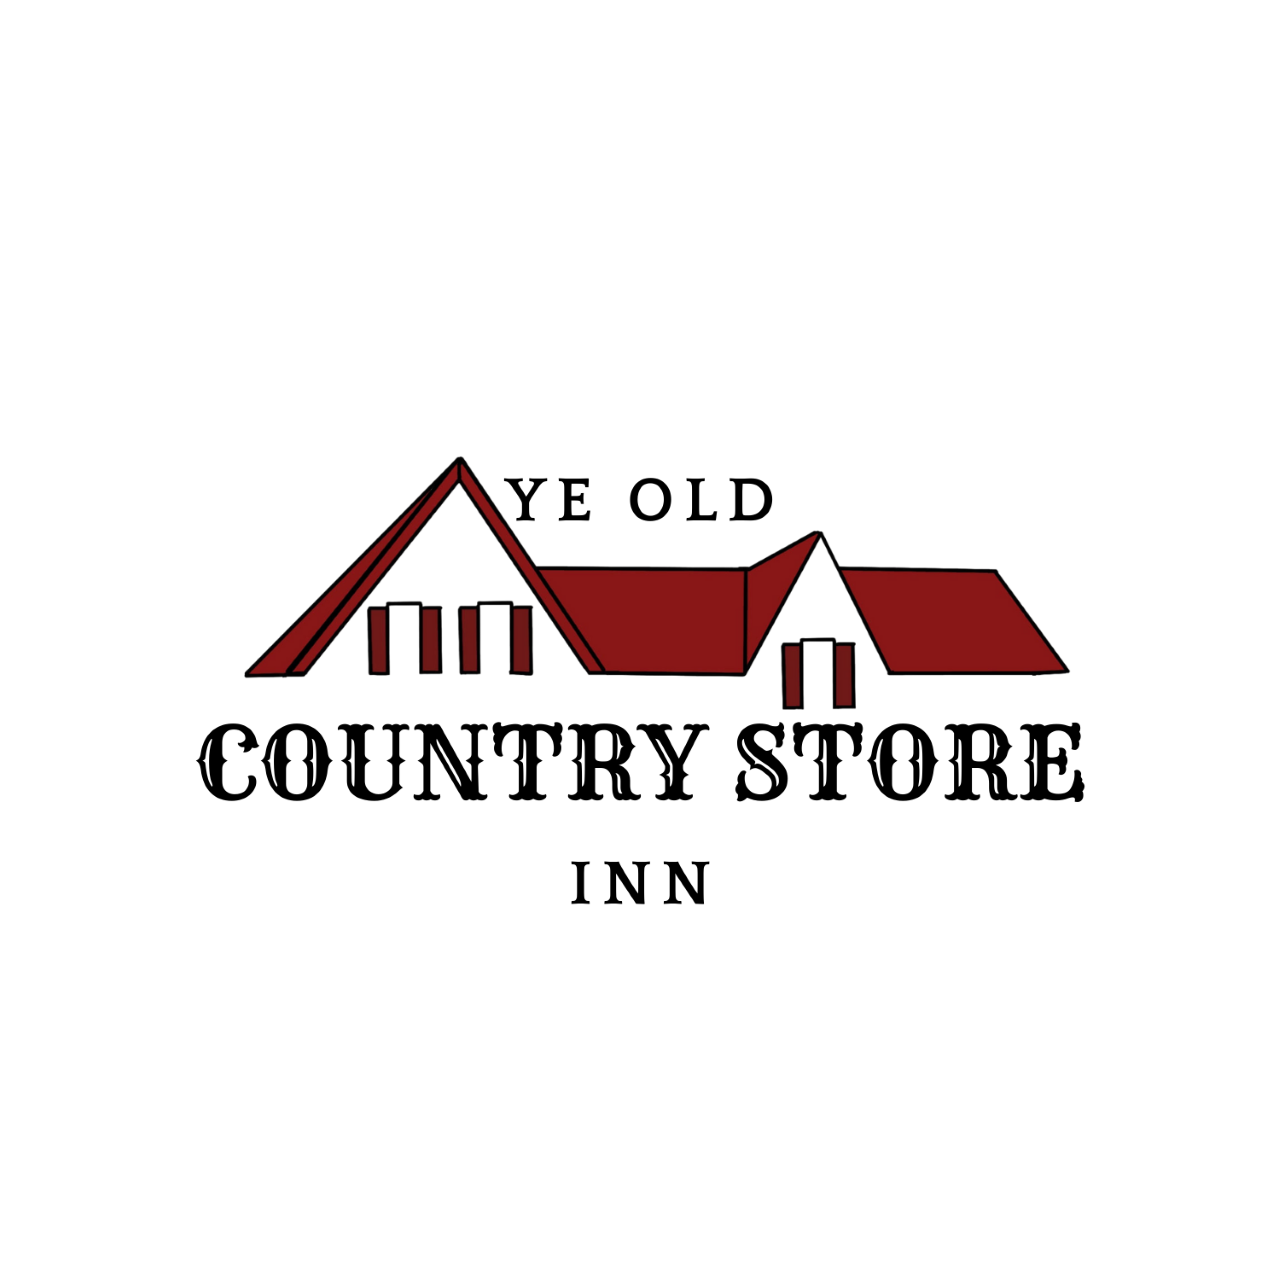 YE OLD COUNTRY STORE INN